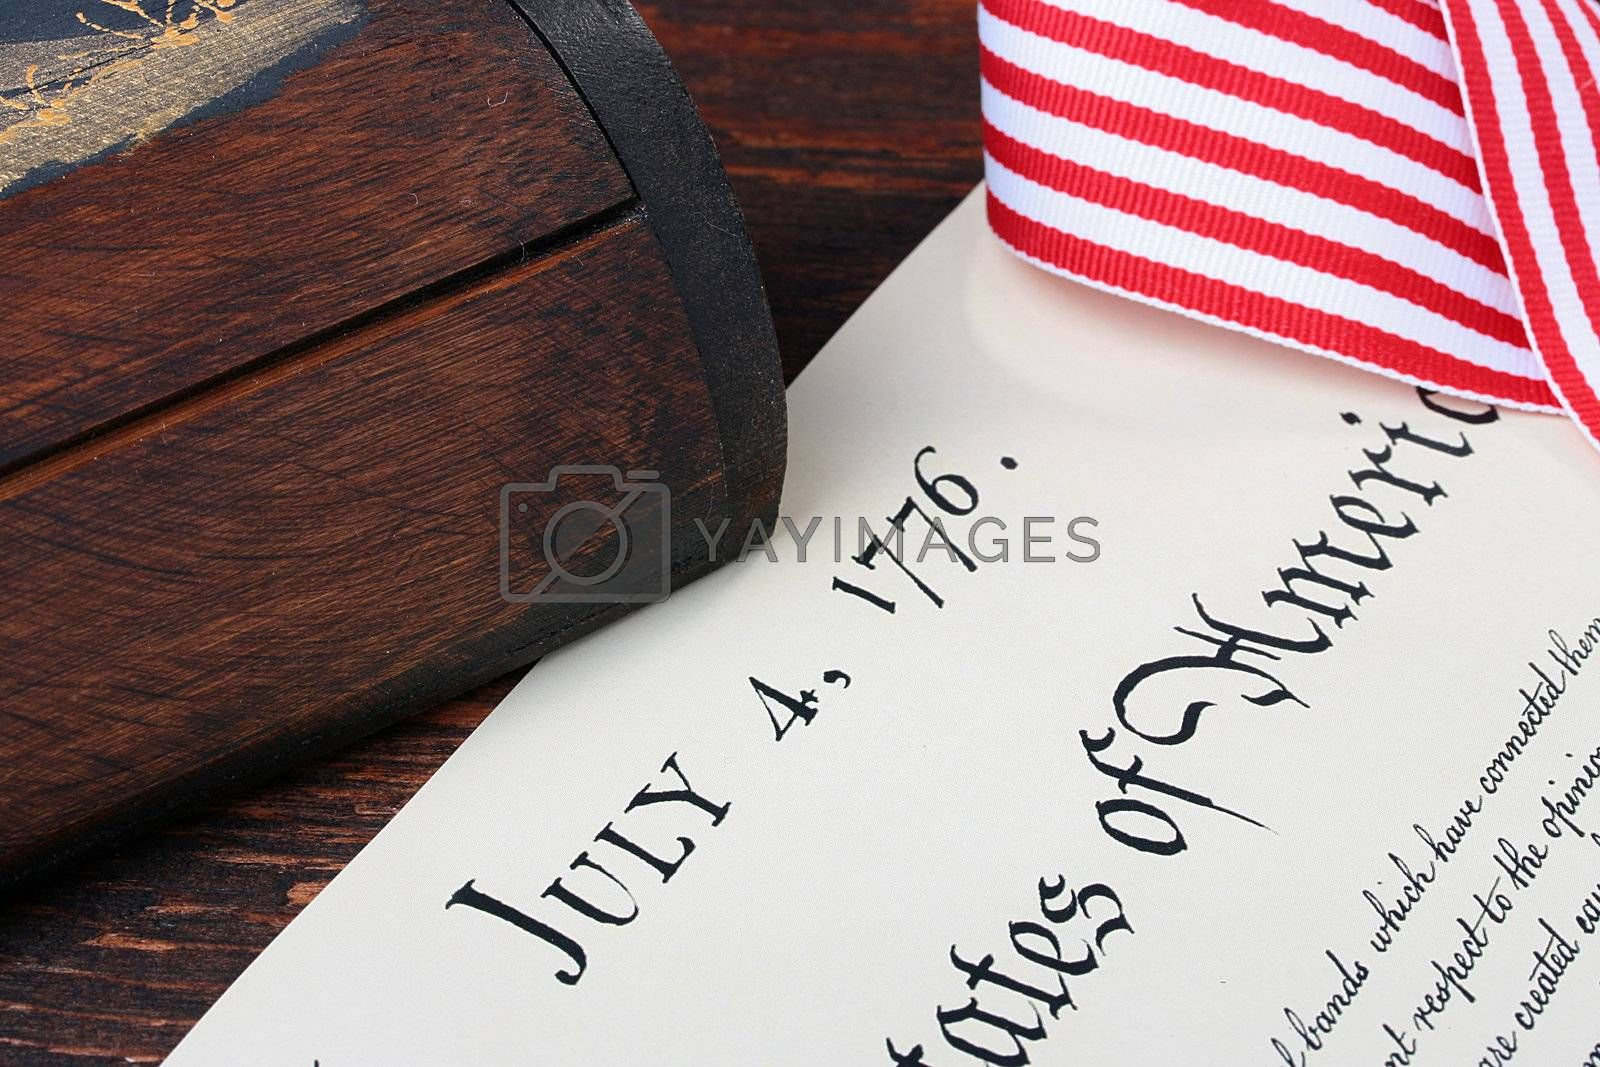 Celebrating of Day of Independence on July, 4th in the United States of America.